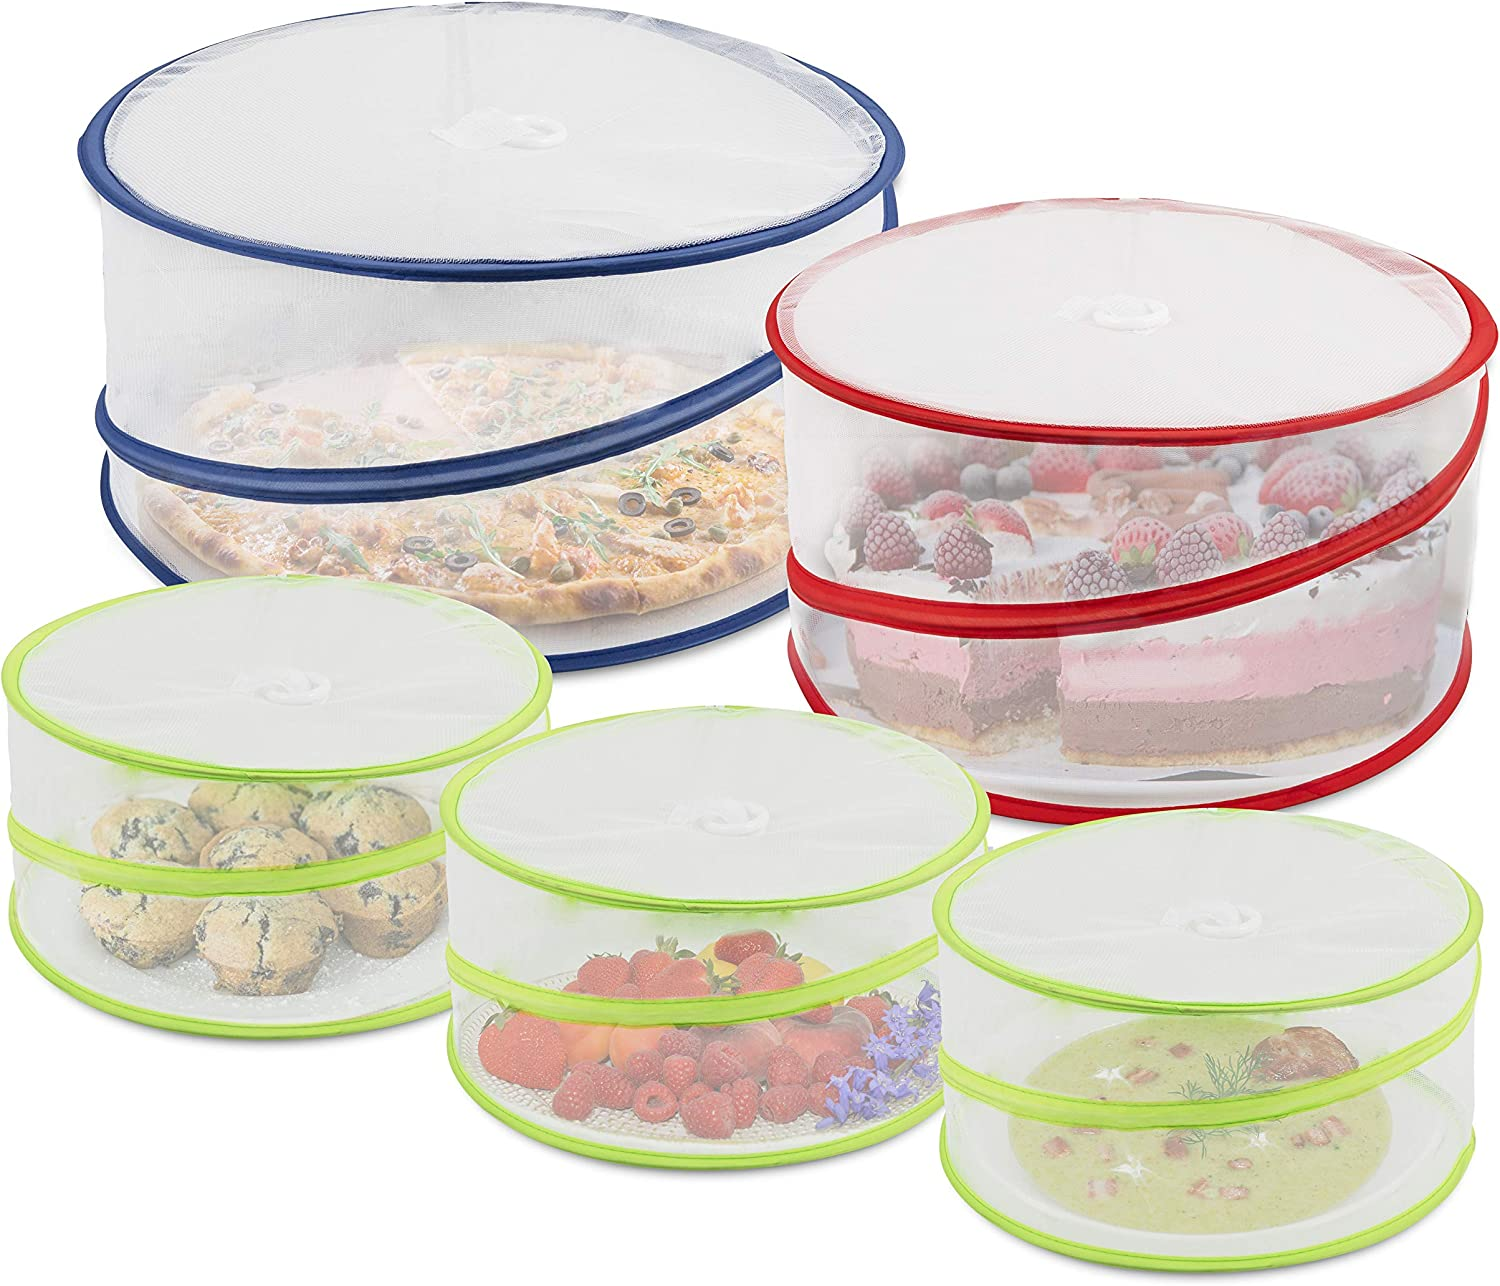 Set of 5 Reusable Mesh Screen Pop up Food Tent Storage Covers, 3 sizes, For Large Platters, Plates and Bowls - Protecting Food and Beverages from Bugs and Insects - Fine Net Design with sprung wire